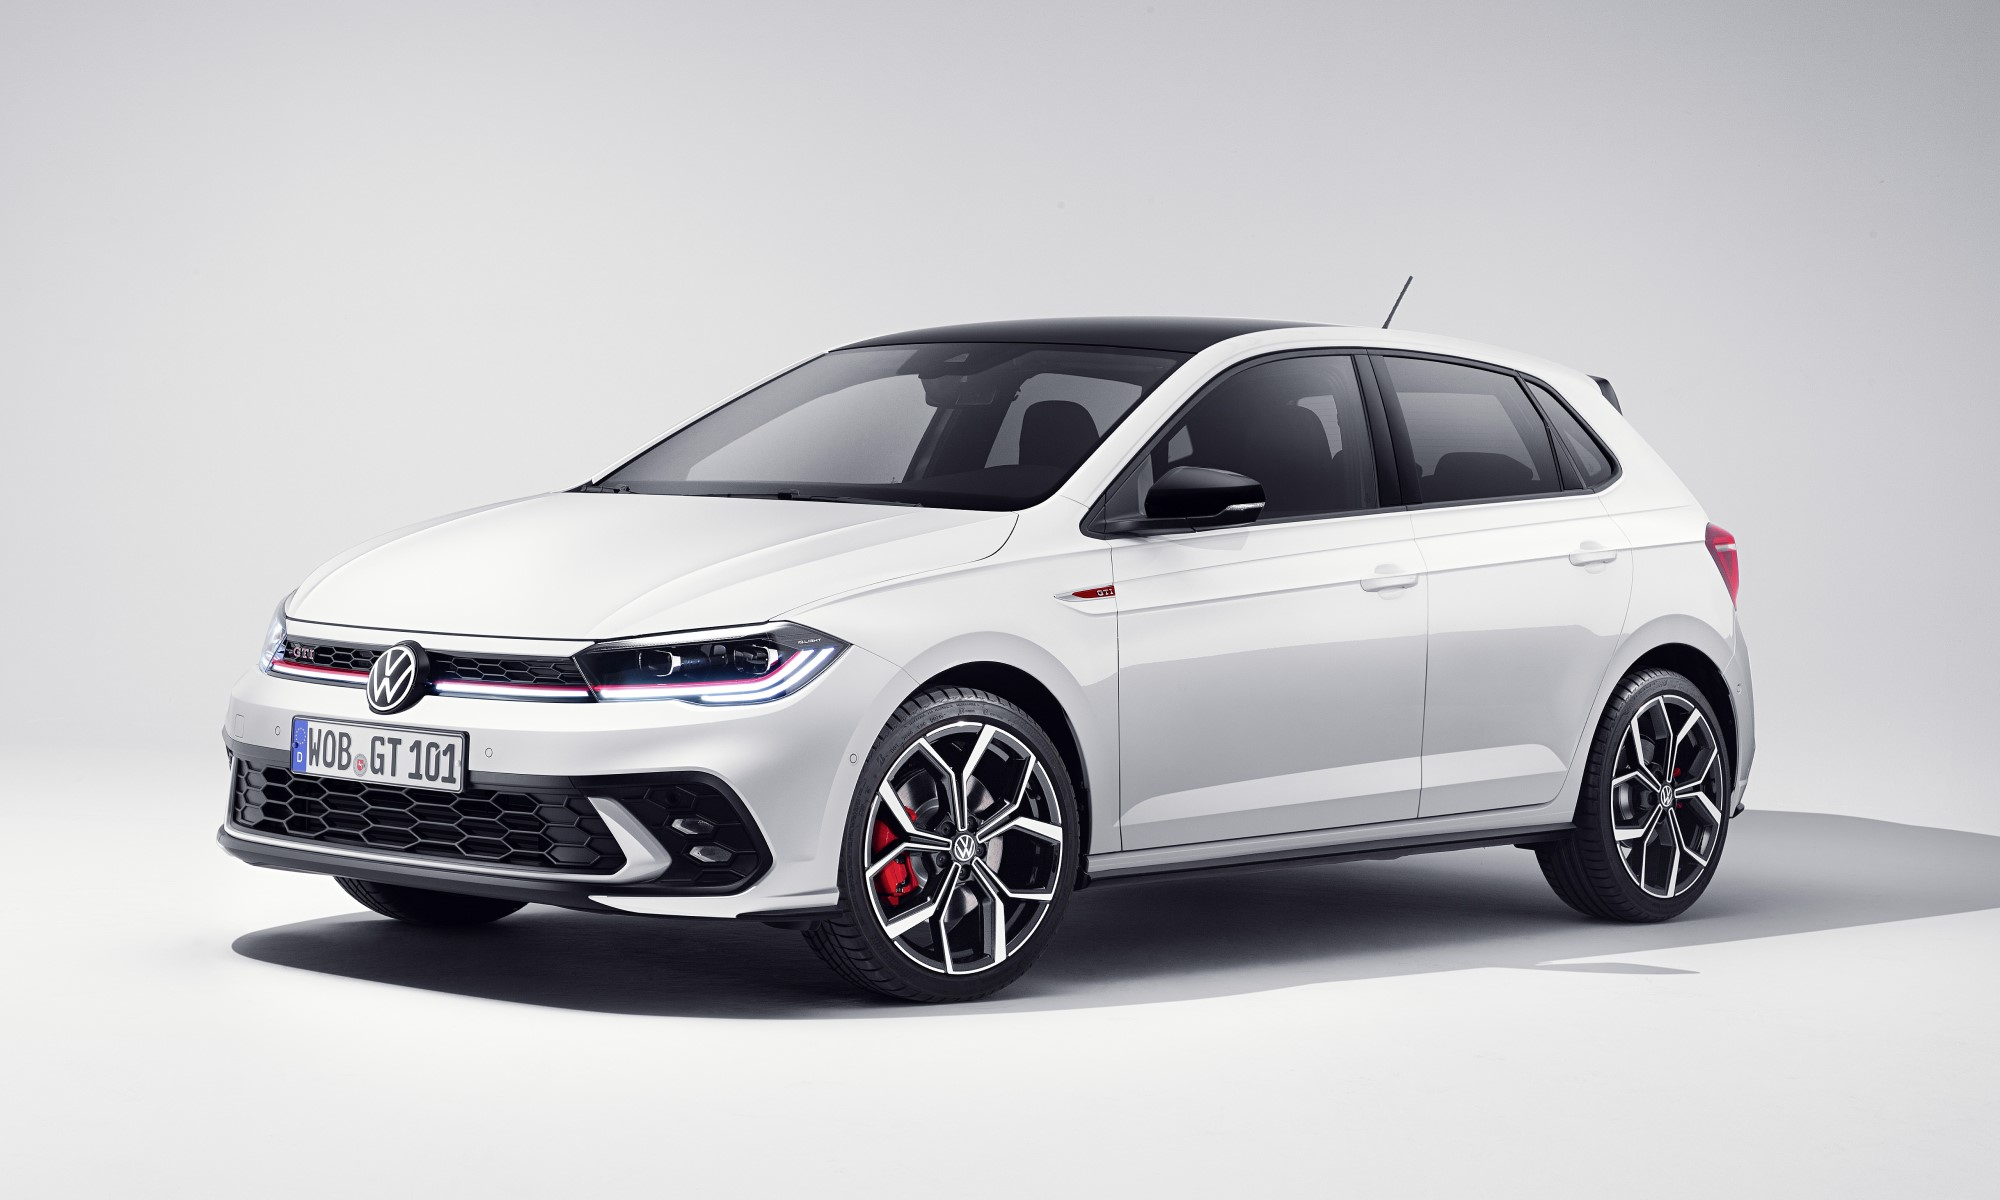 Refreshed VW Polo GTI